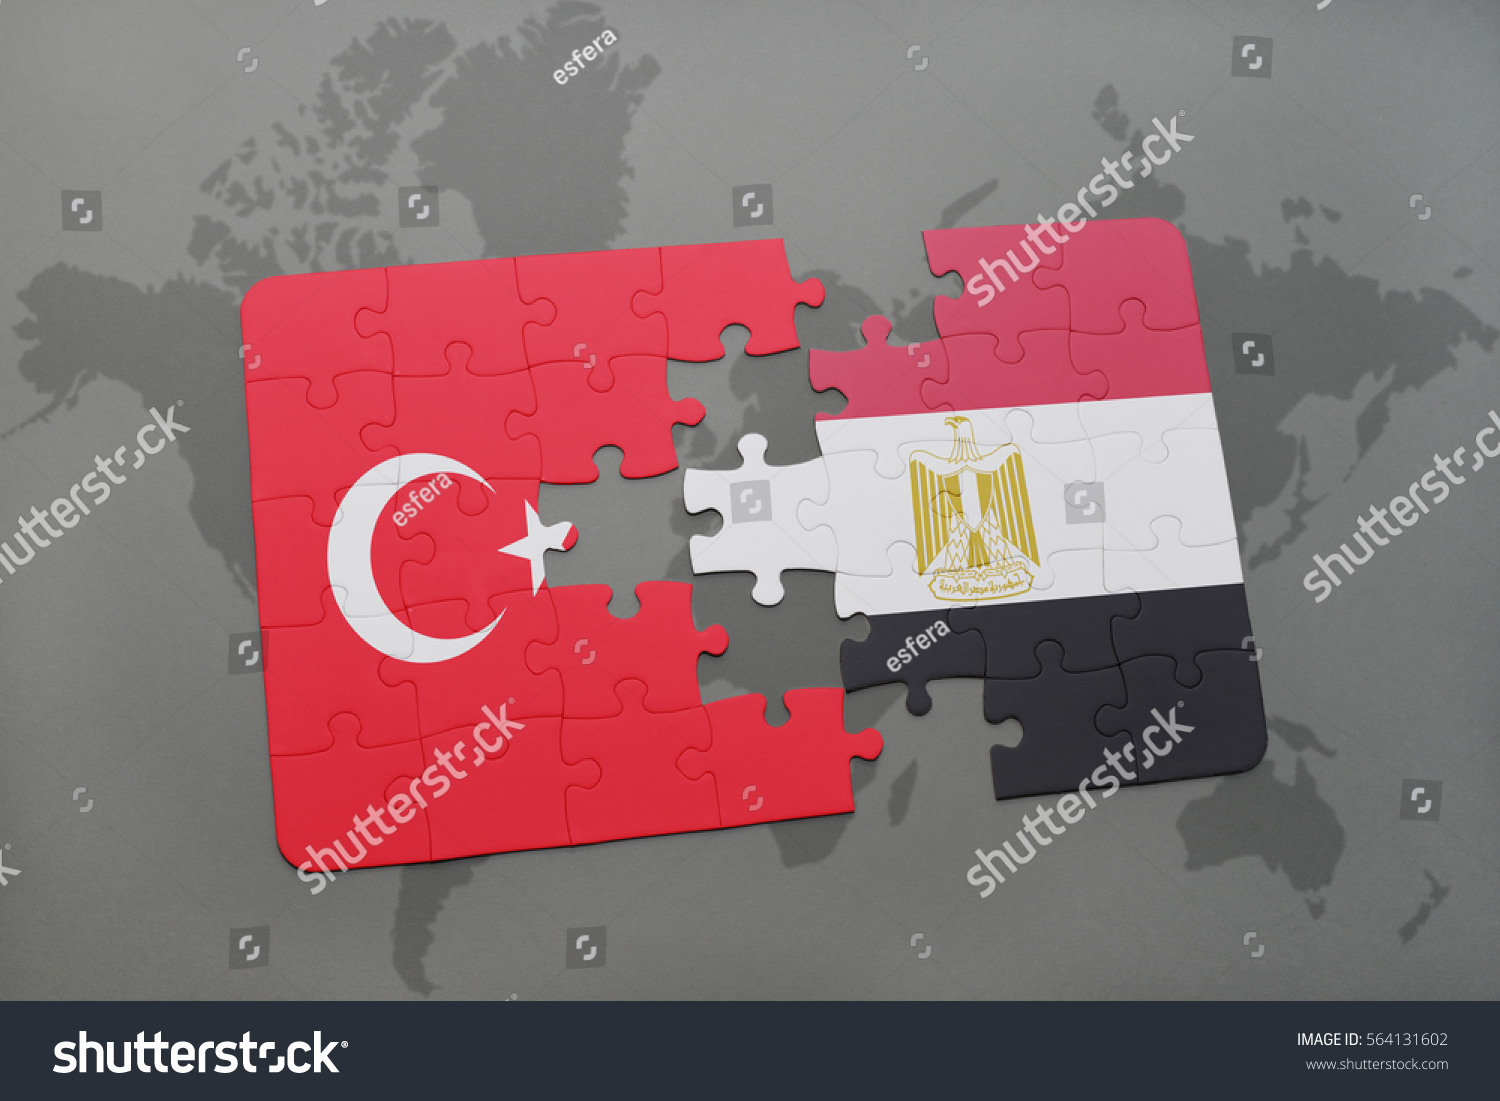 Puzzle national flag turkey egypt on stock illustration 564131602 puzzle national flag turkey egypt on stock illustration 564131602 shutterstock gumiabroncs Choice Image